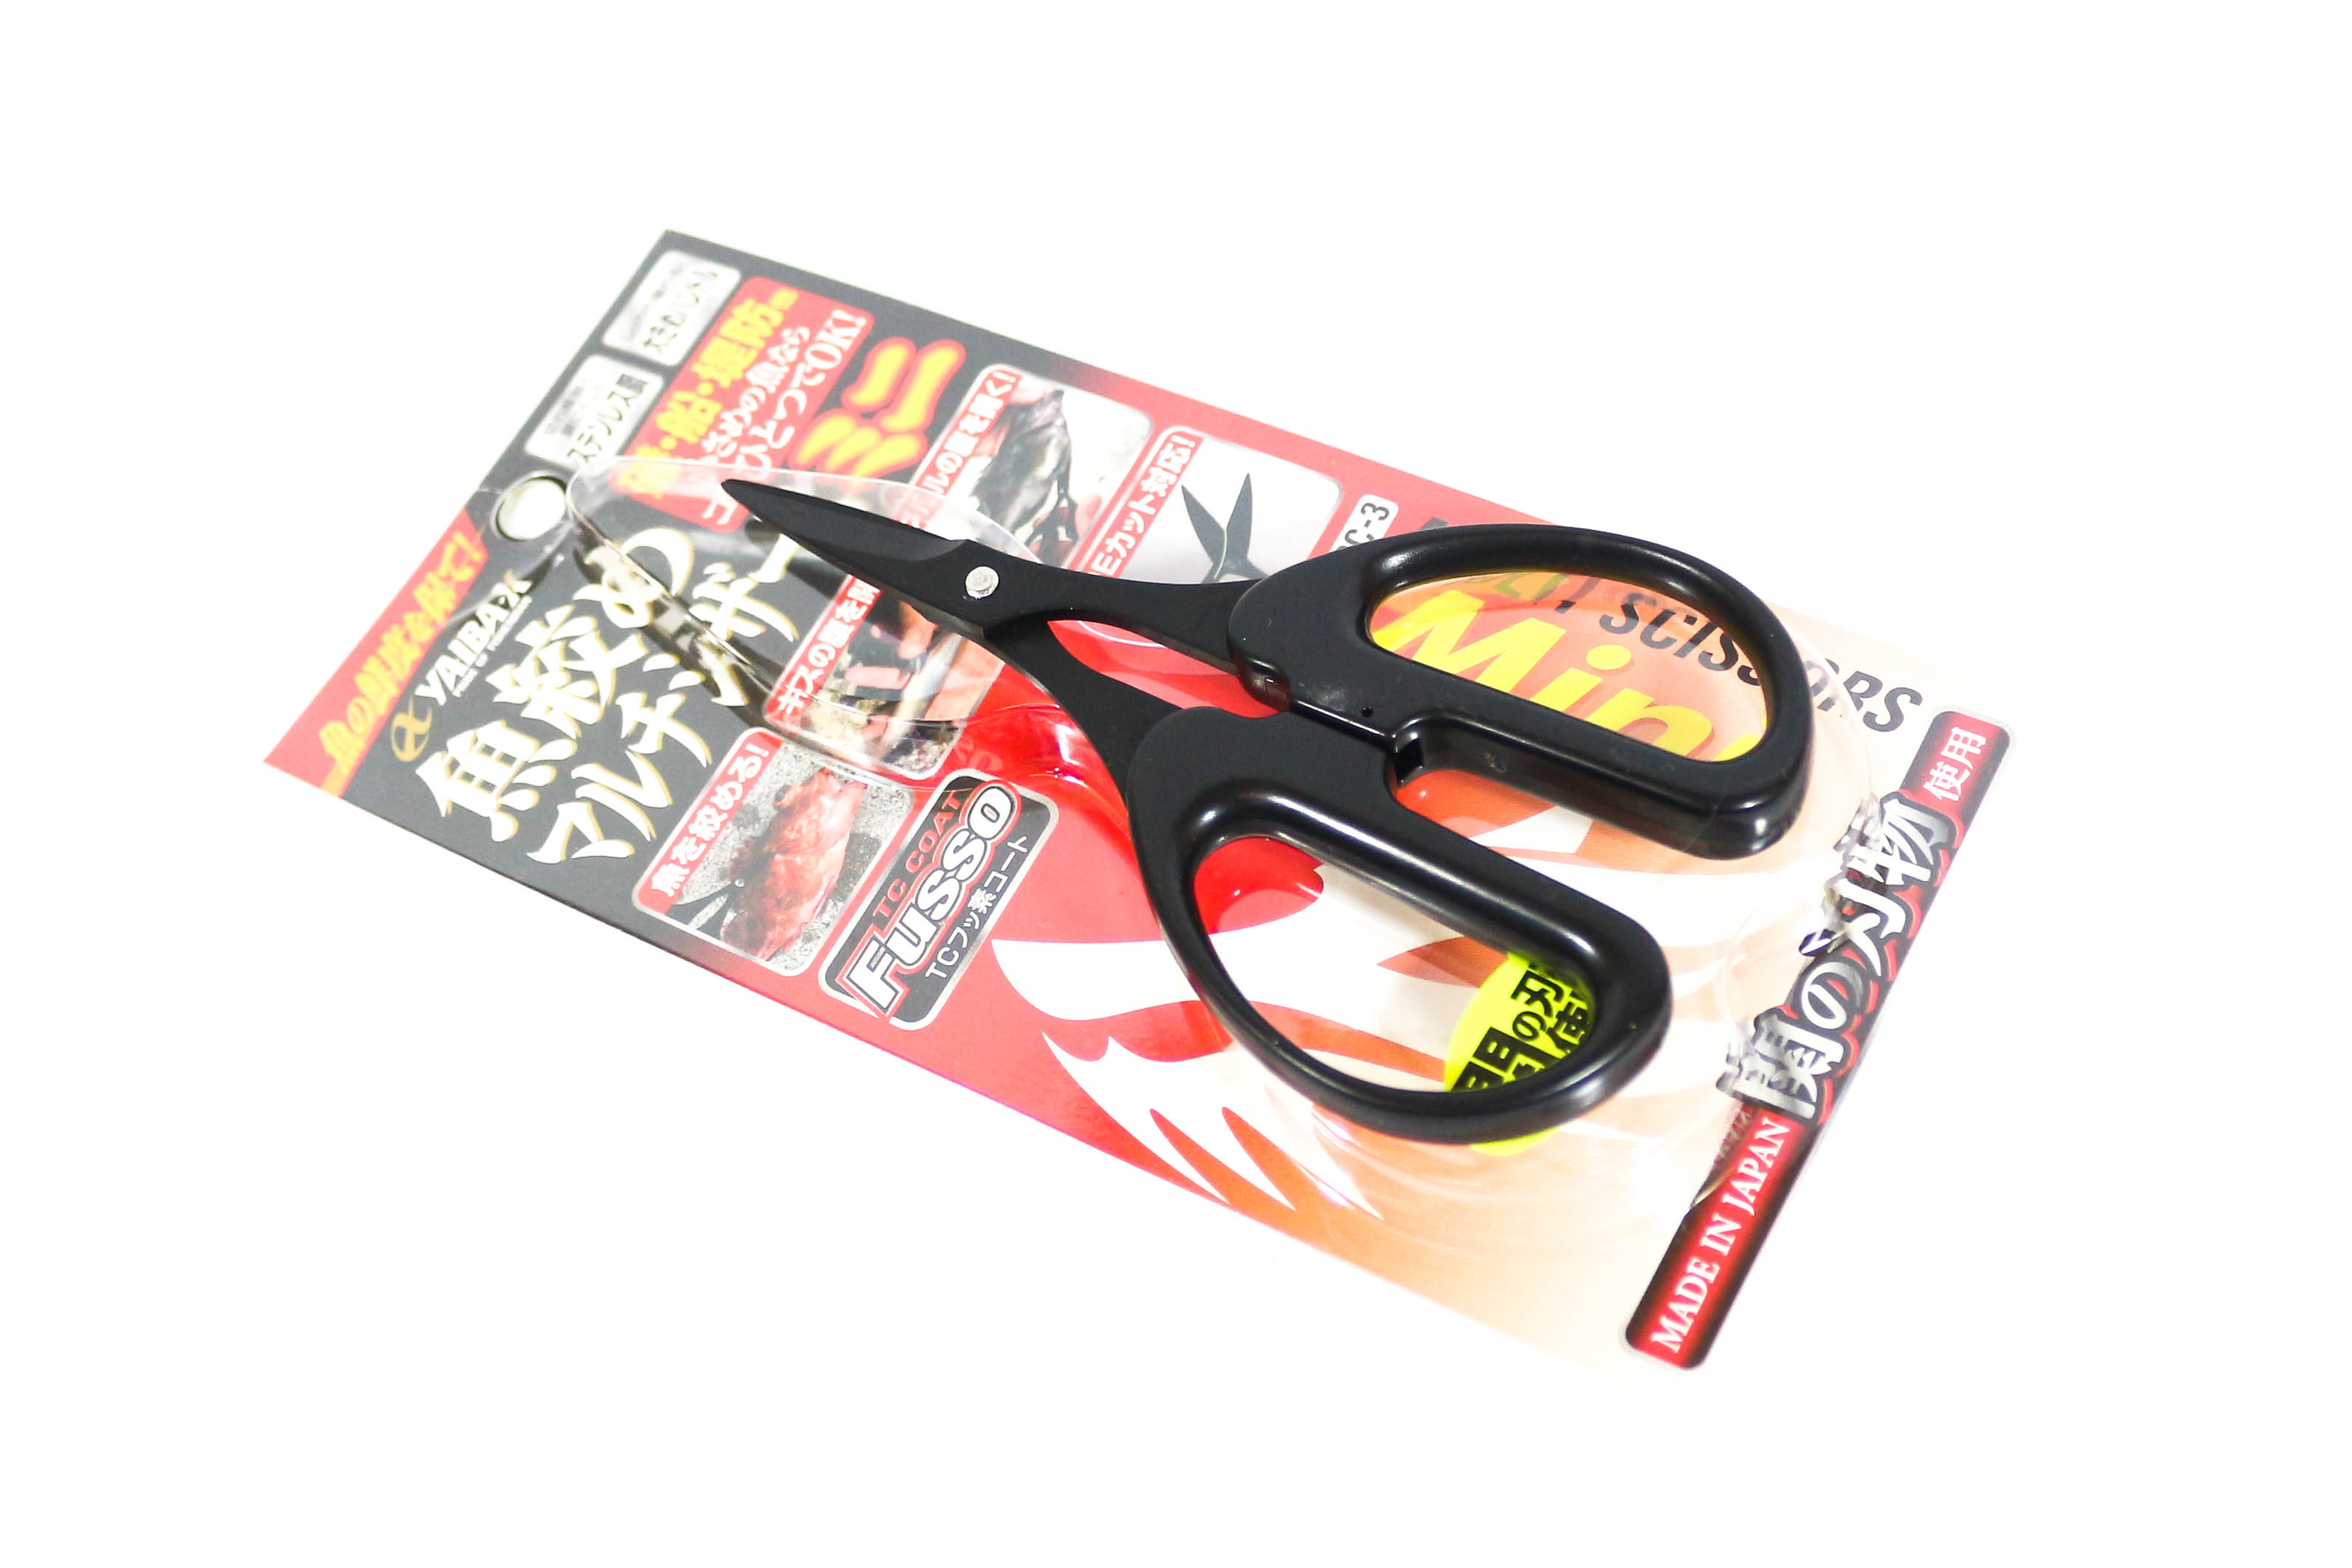 Sasame YSC-3 Fishing Bait and P.E Scissors 120 x 68 mm (3865)